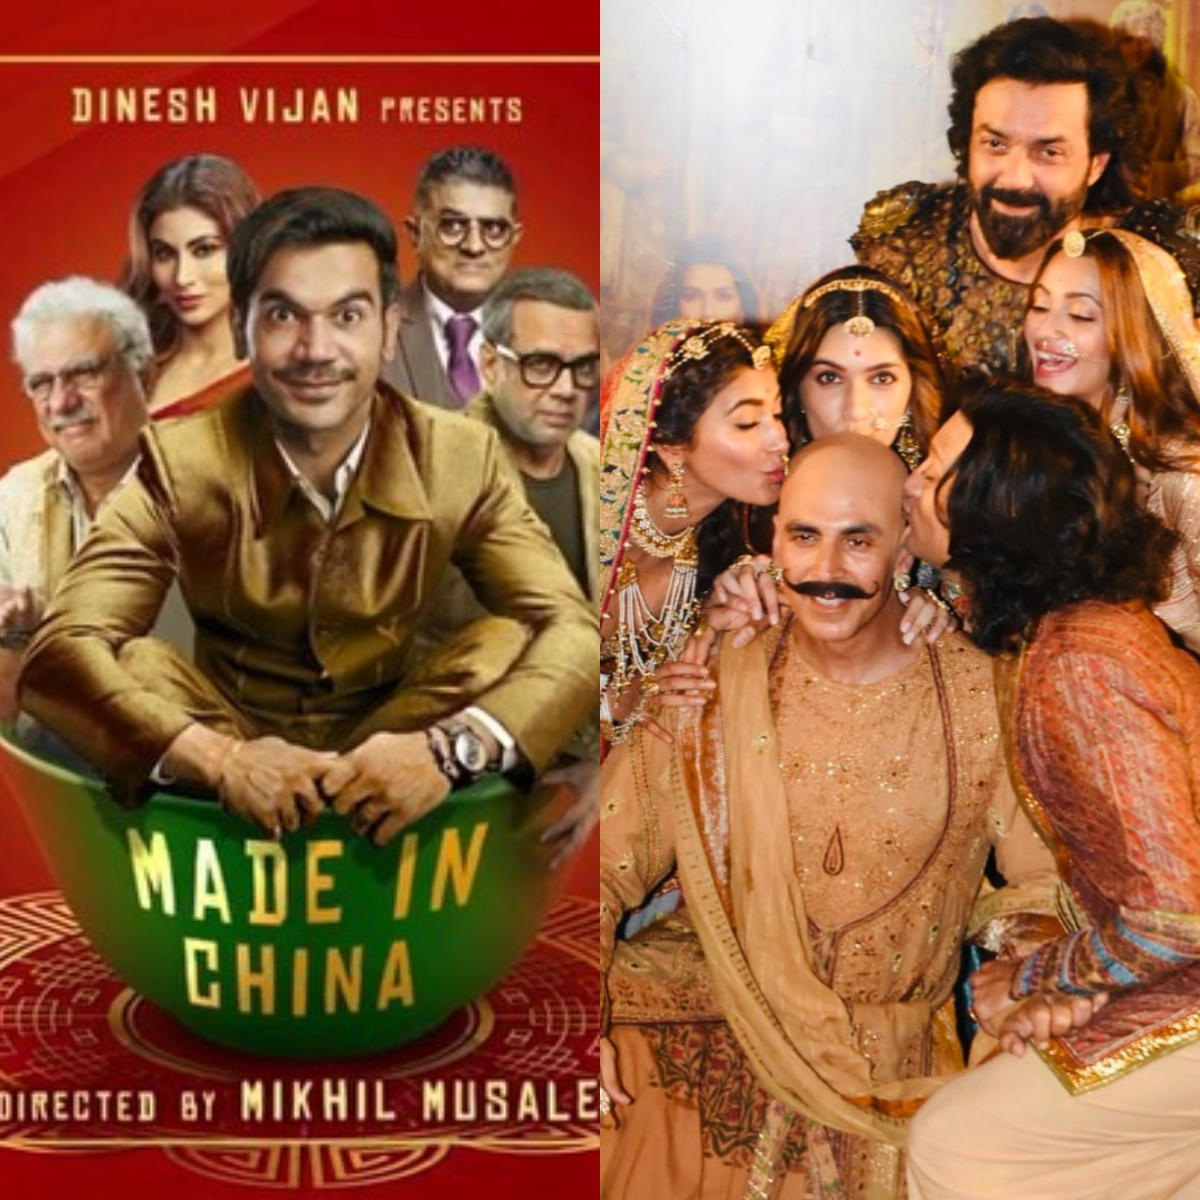 Rajkummar Rao starrer Made In China's director has THIS to say on clash with Akshay Kumar's Housefull 4